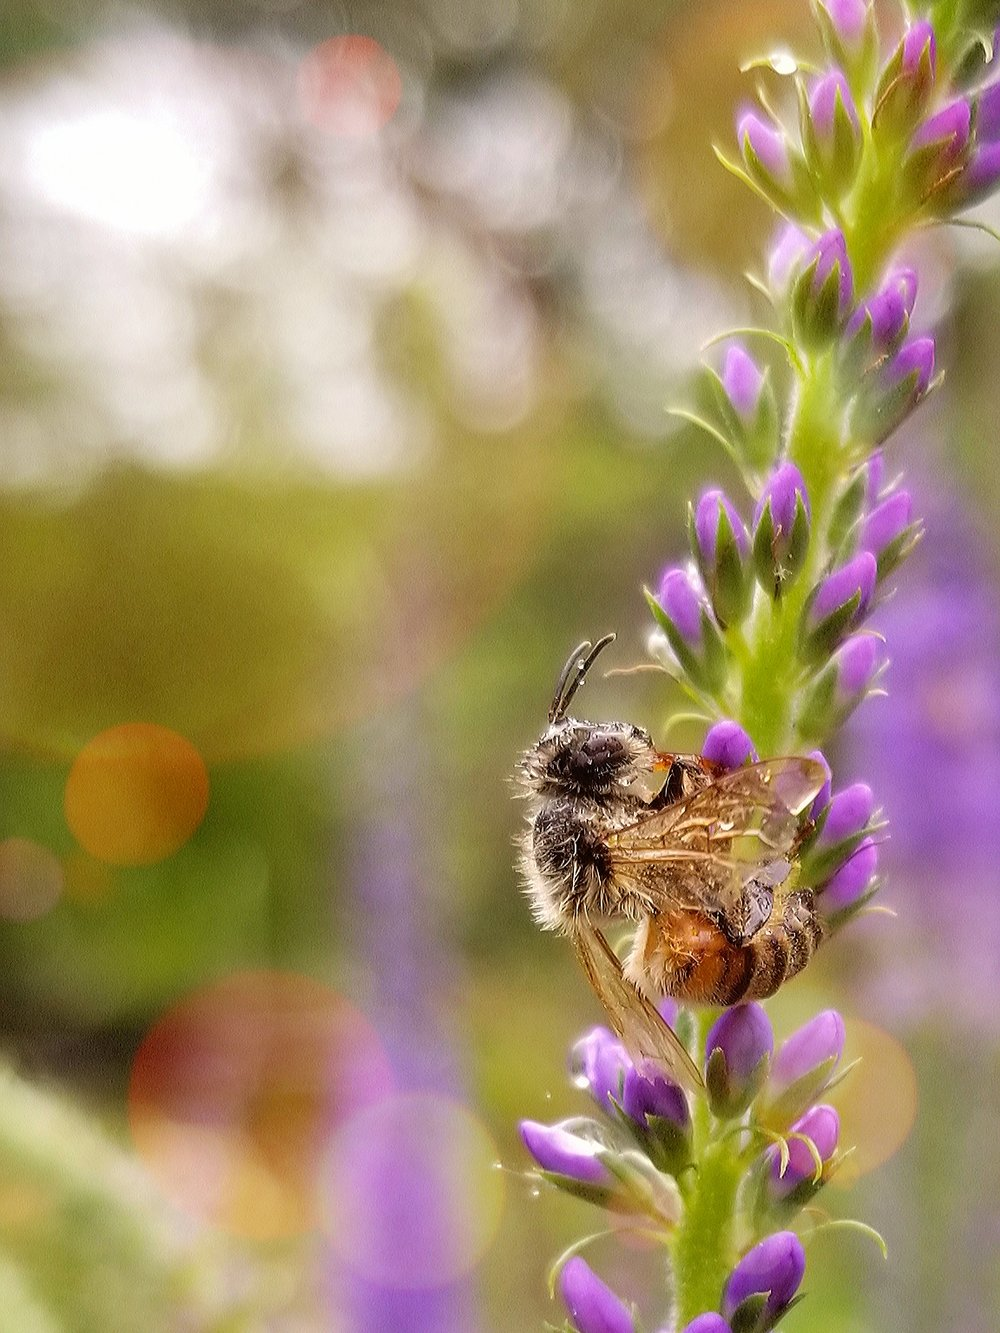 BEE AND FLOWER, WITH SUN GLARE